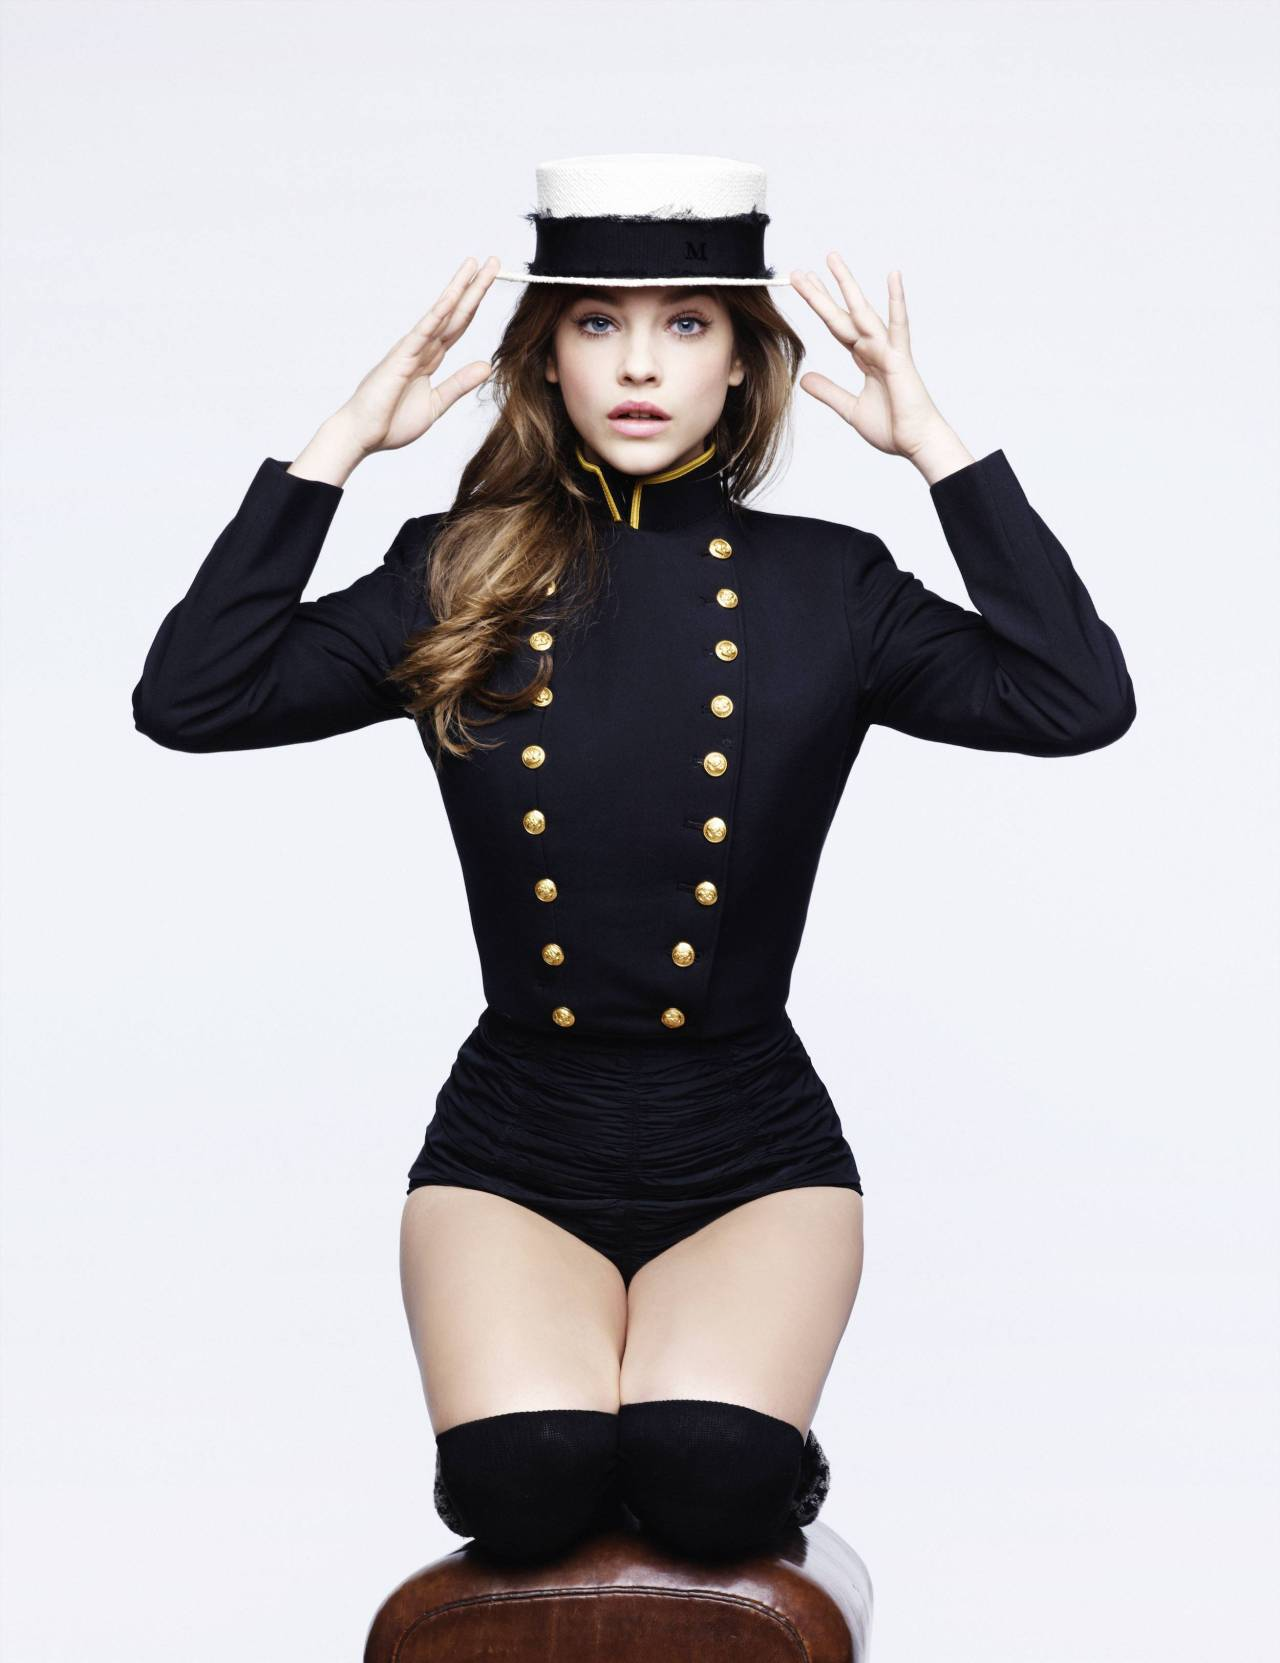 Barbara Palvin photographed by Karl Lagerfeld